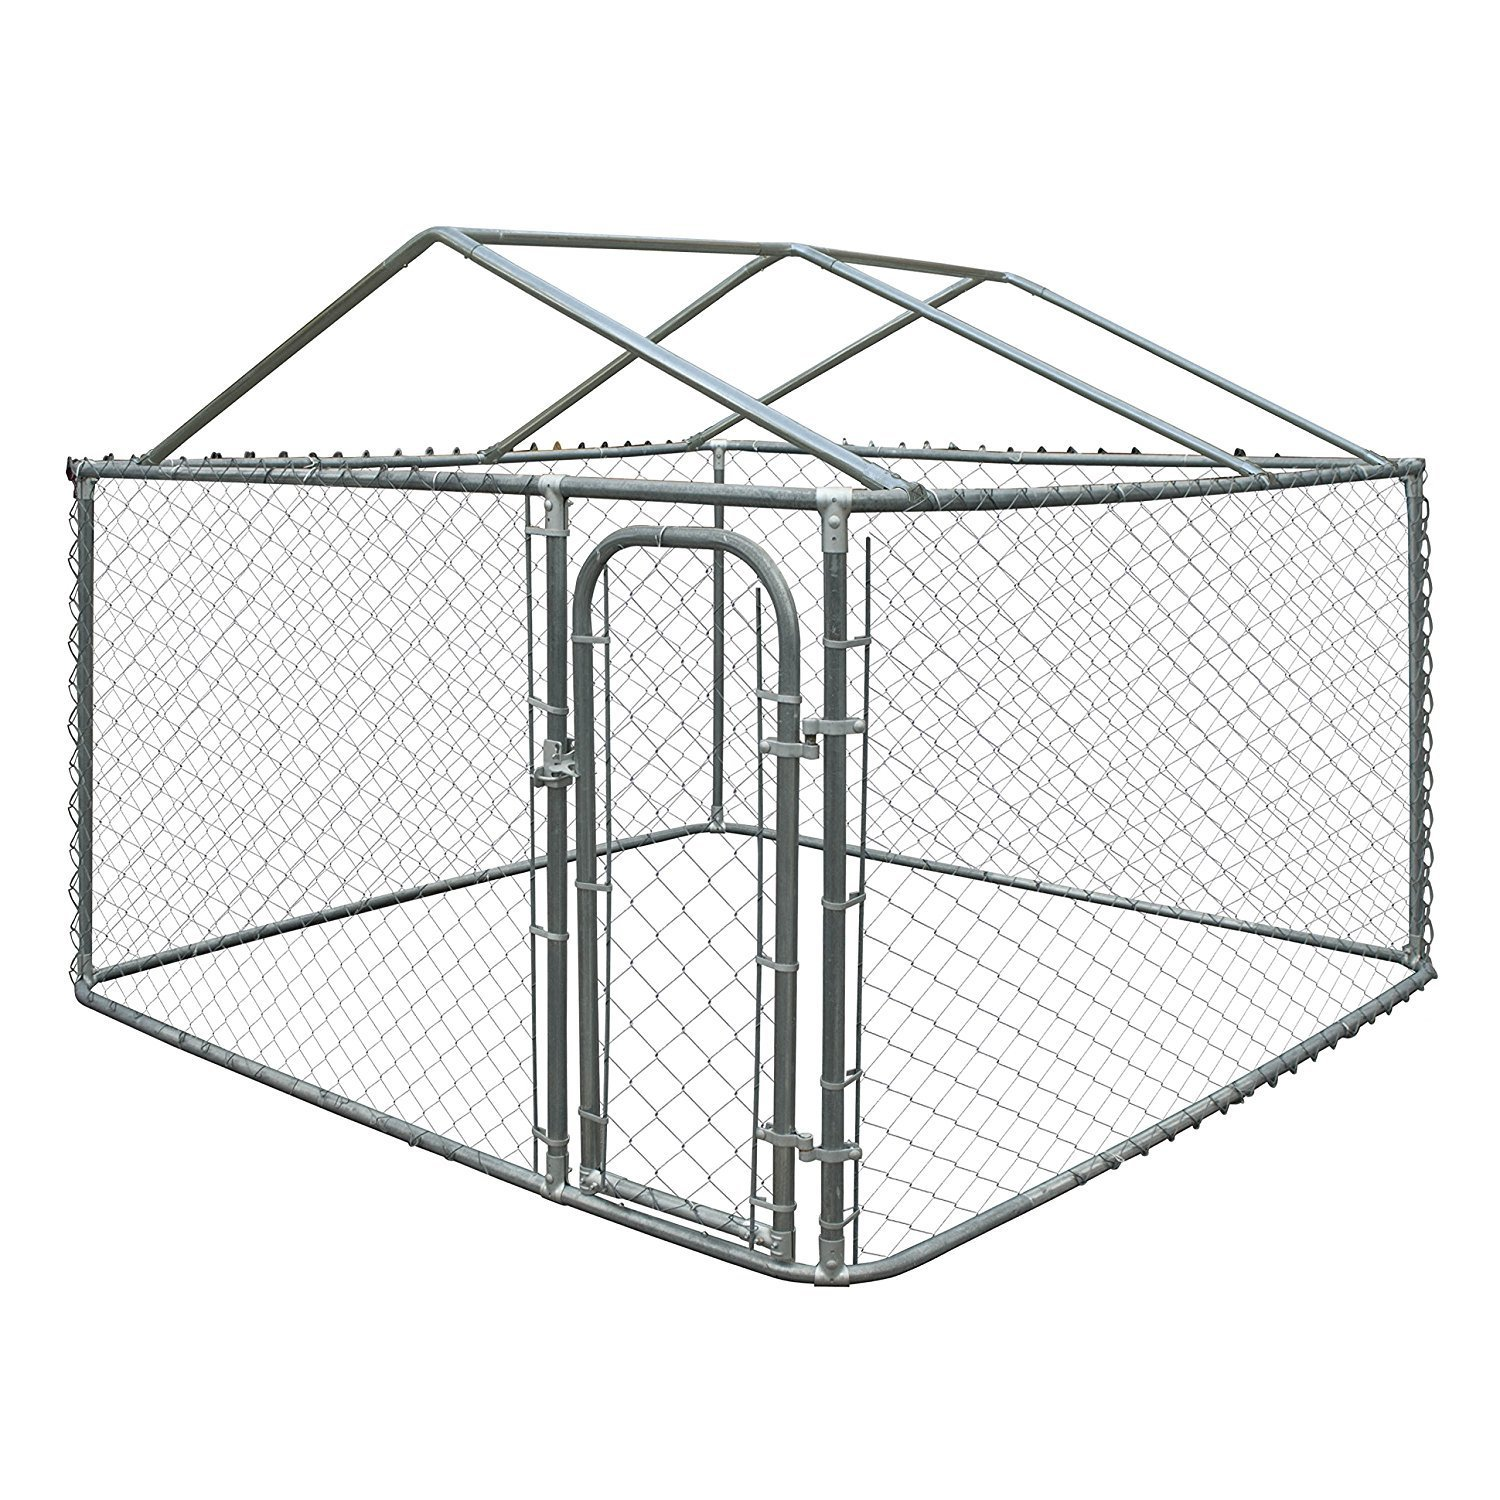 Aleko DIY Chain Link Box Dog Kennel Fence With Roof Frame...